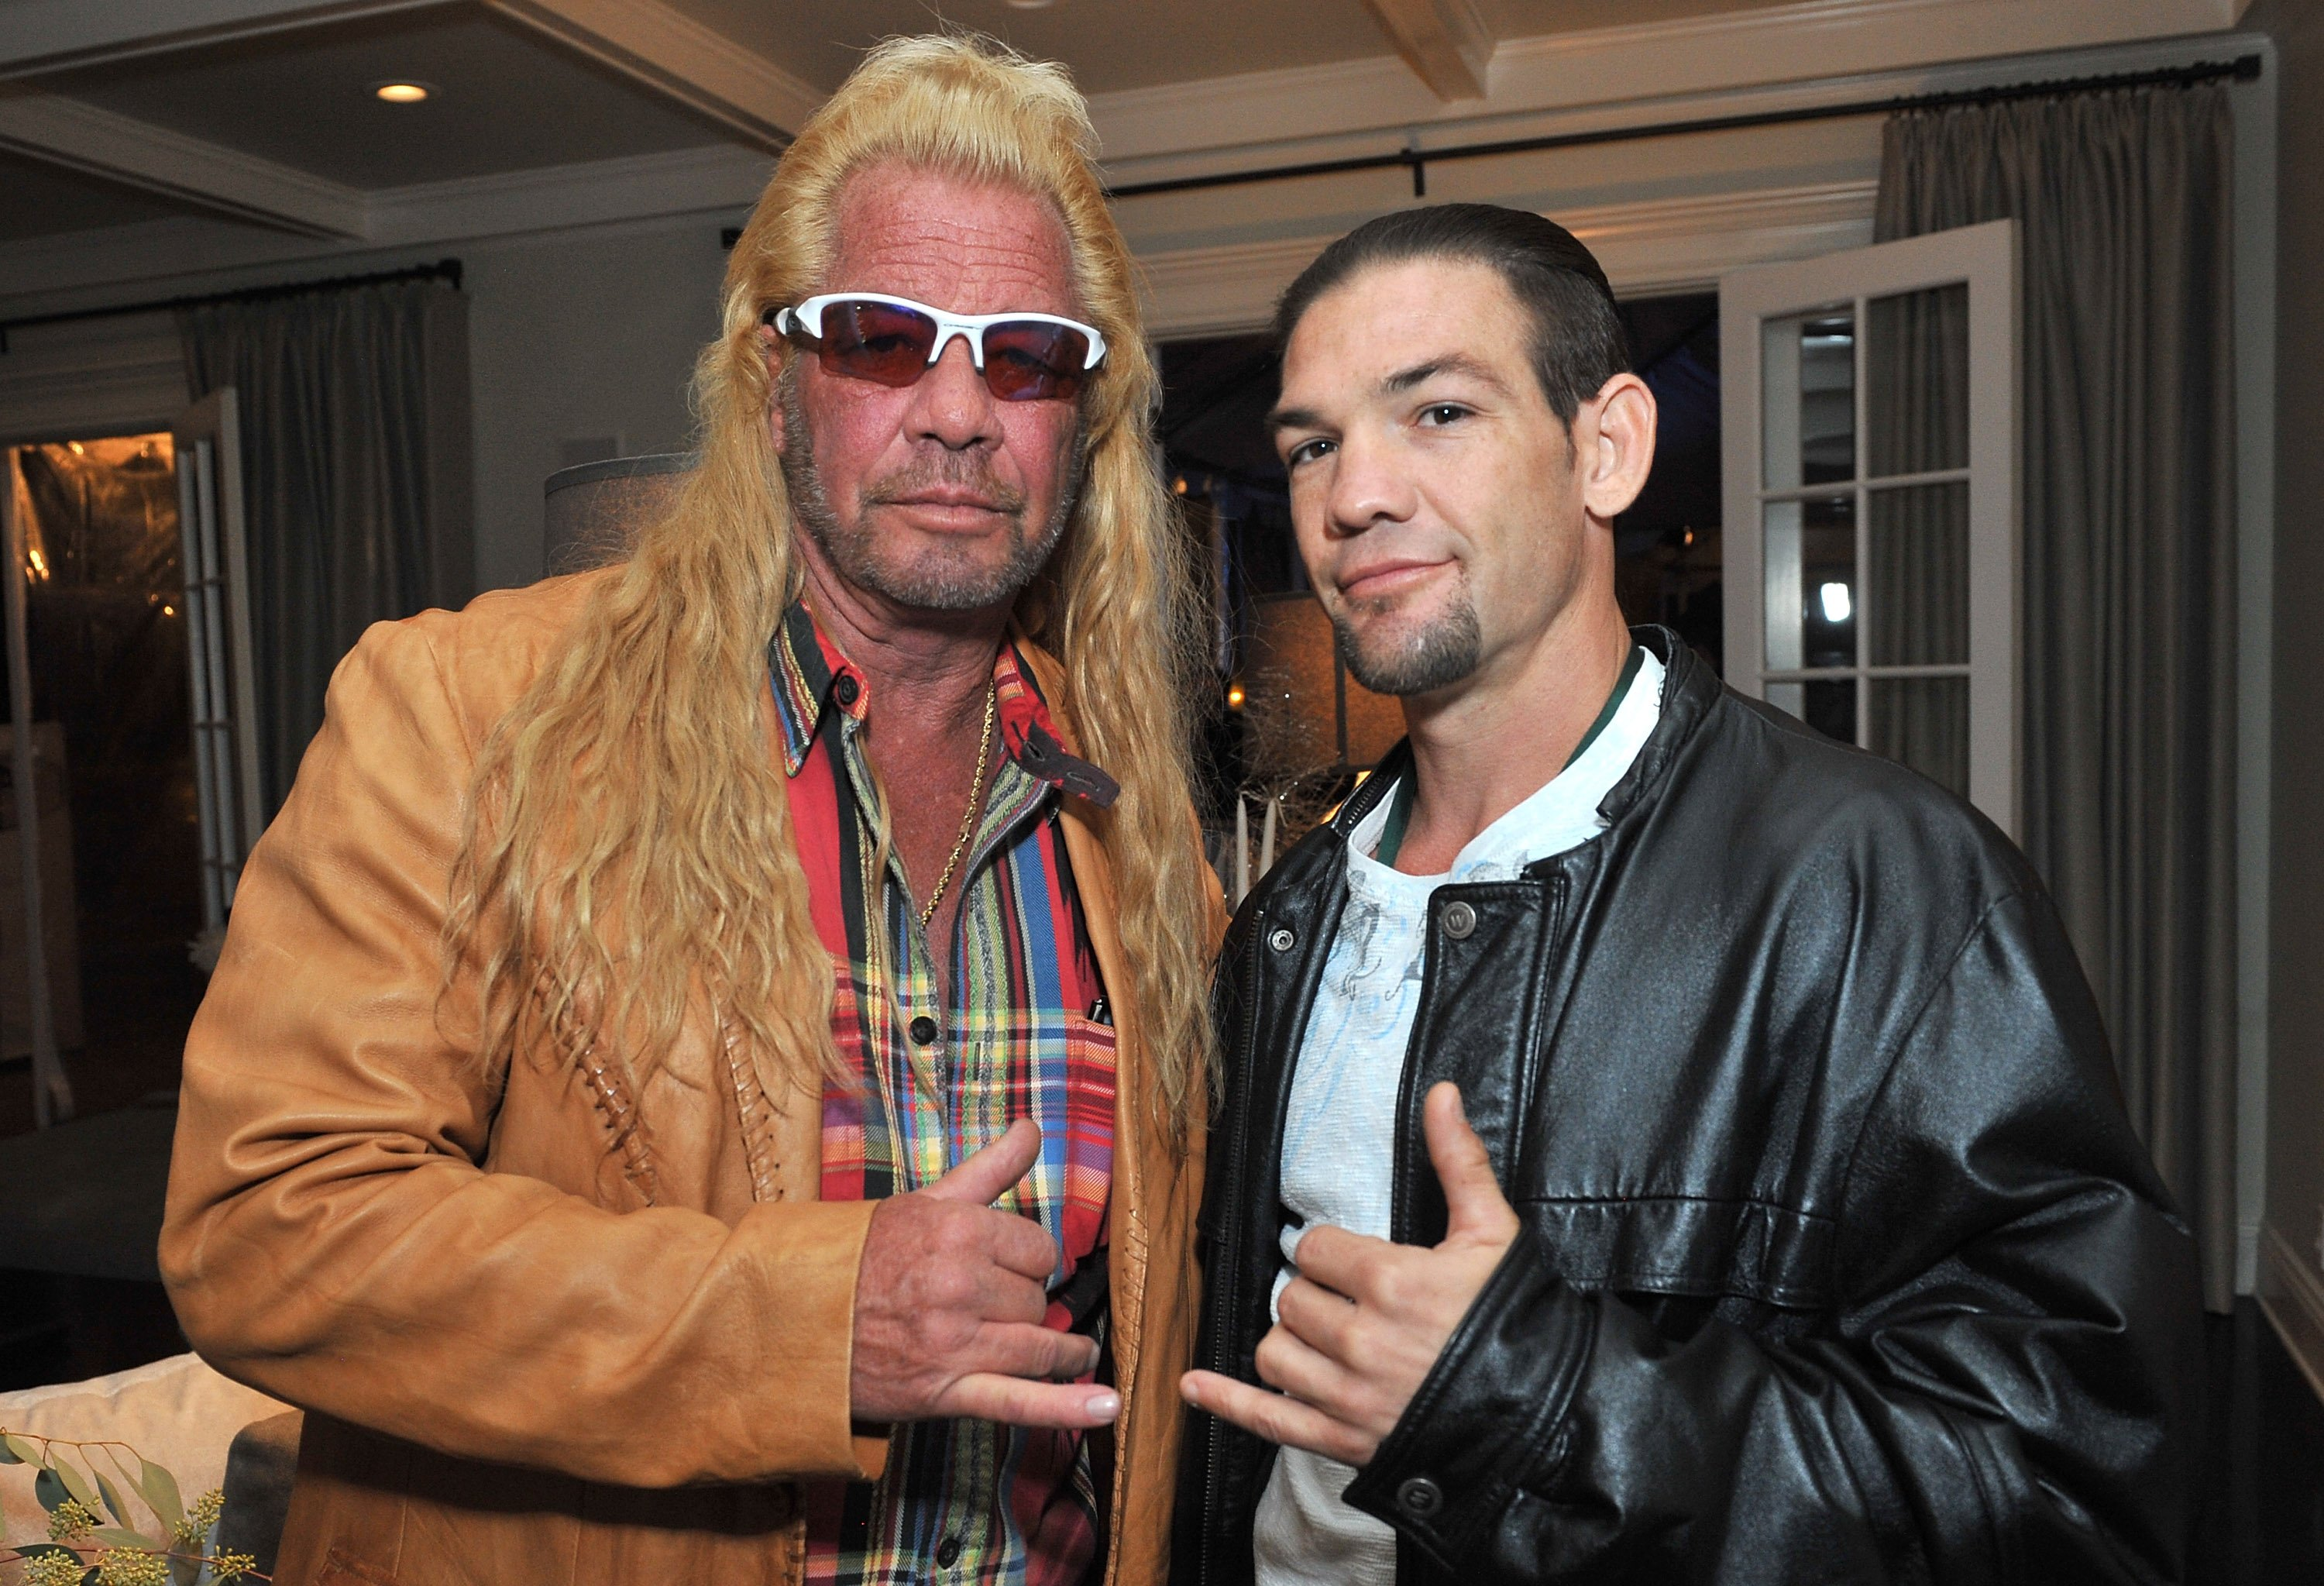 Dog Chapman and Leland Chapman attend the 2013 Electus & College Humor Holiday Party at a private residency on December 12, 2013 in Los Angeles.   Source: Getty Images